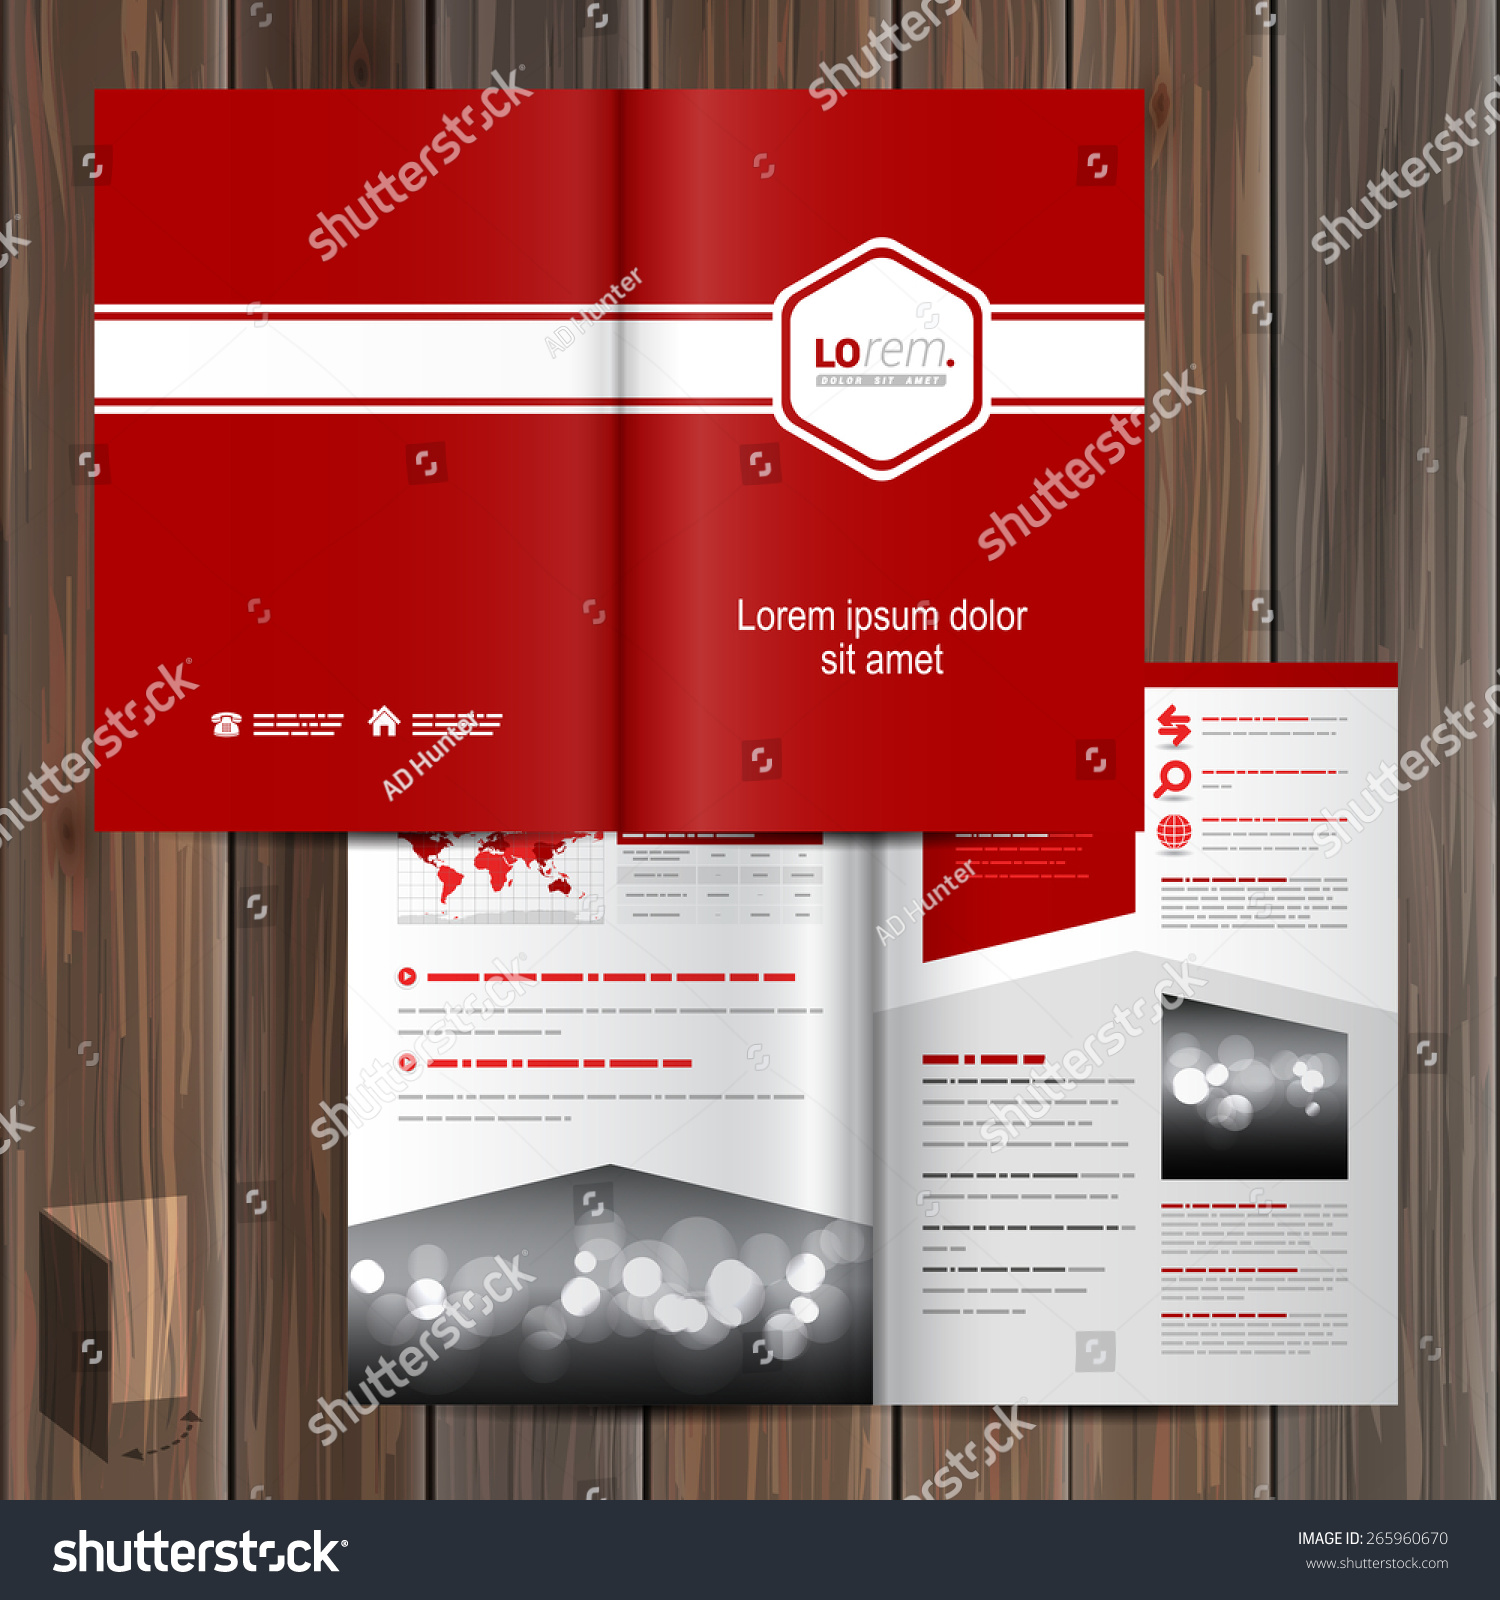 Red Classic Brochure Template Design White Stock Vector - Horizontal brochure template